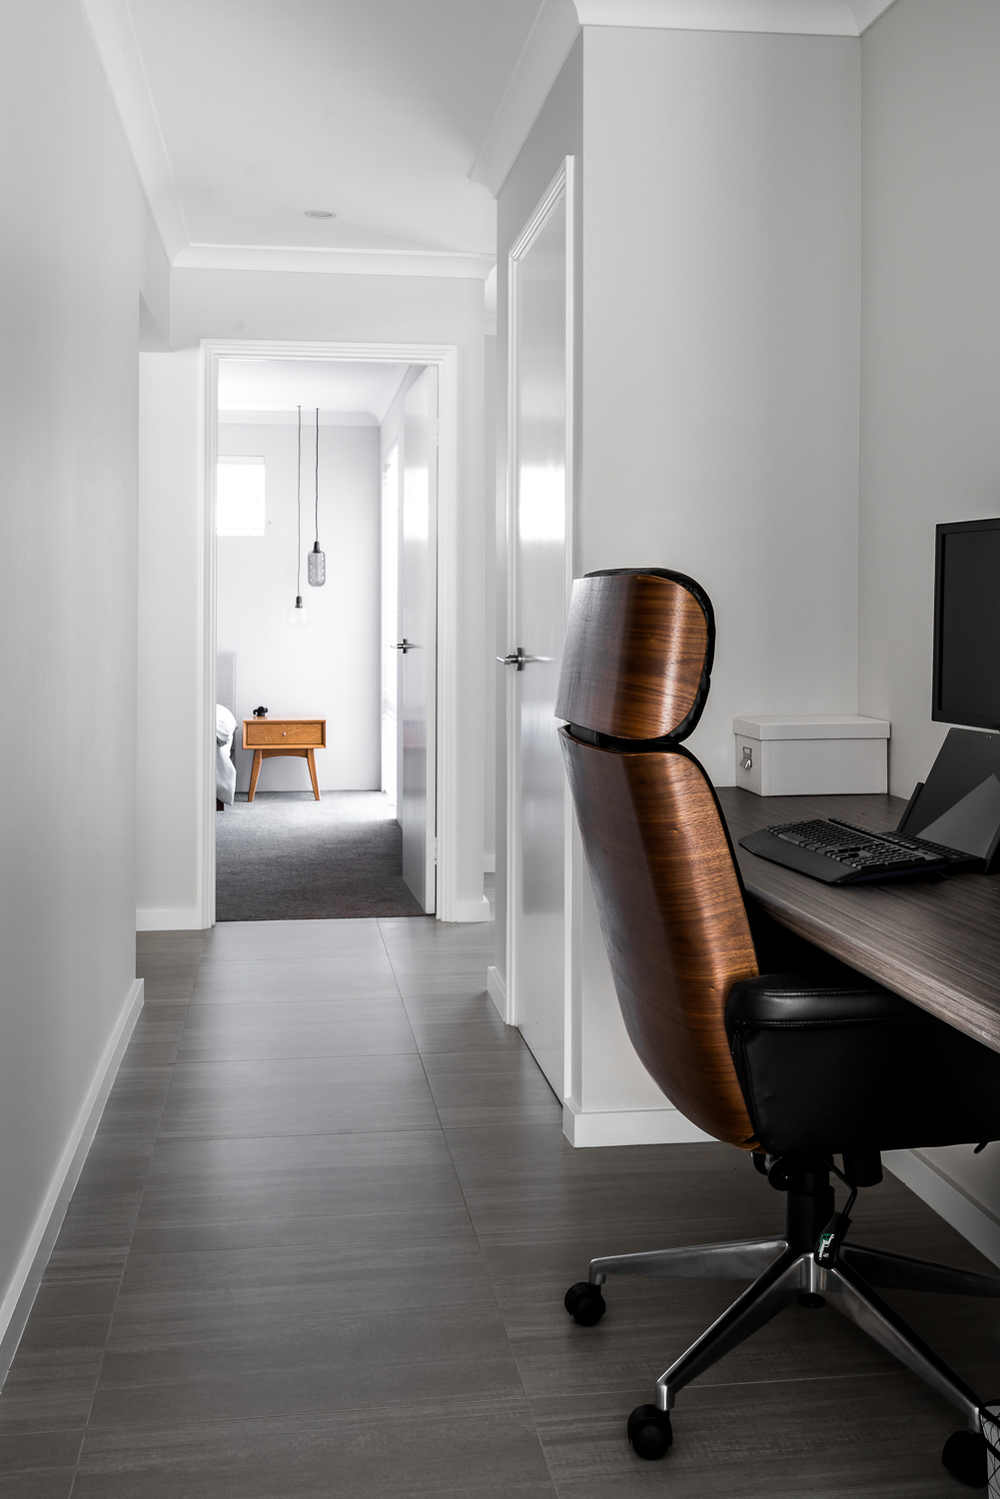 Study nook within second wing passageway design by DALECKI DESIGN